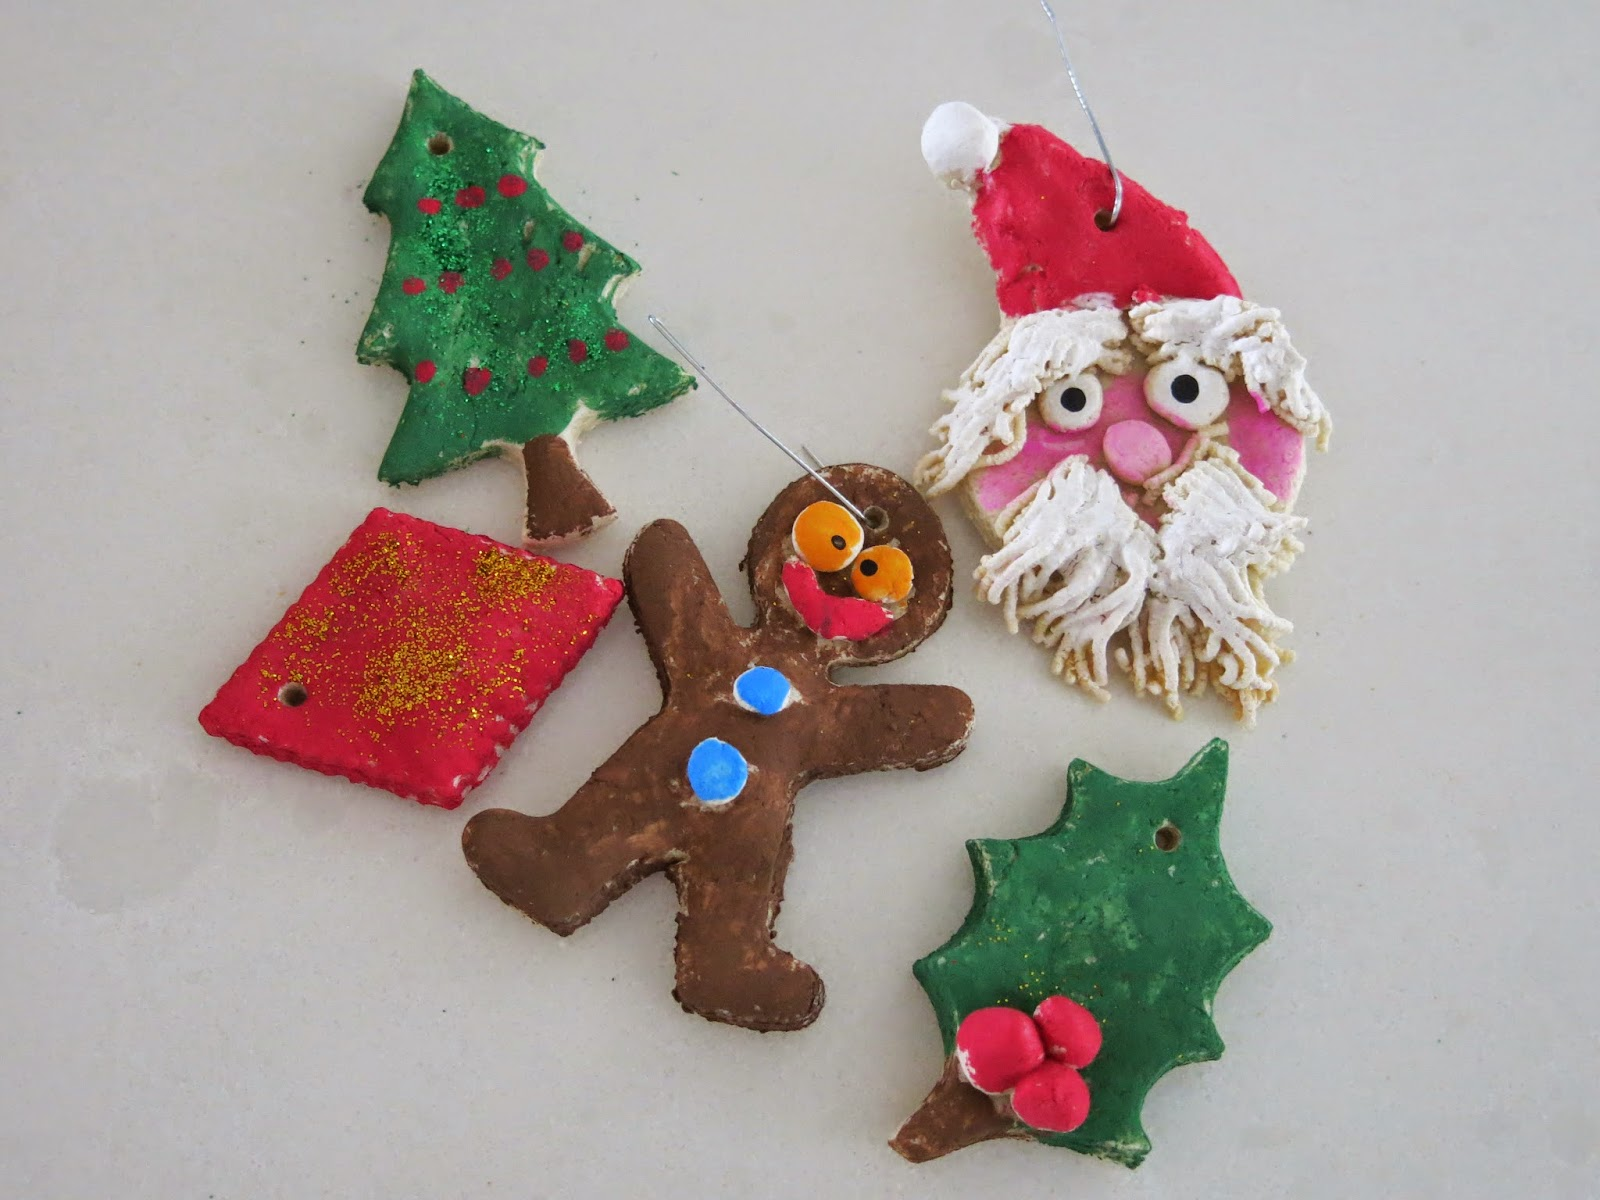 Caker Cooking: Old-Fashioned Salt Dough Ornaments